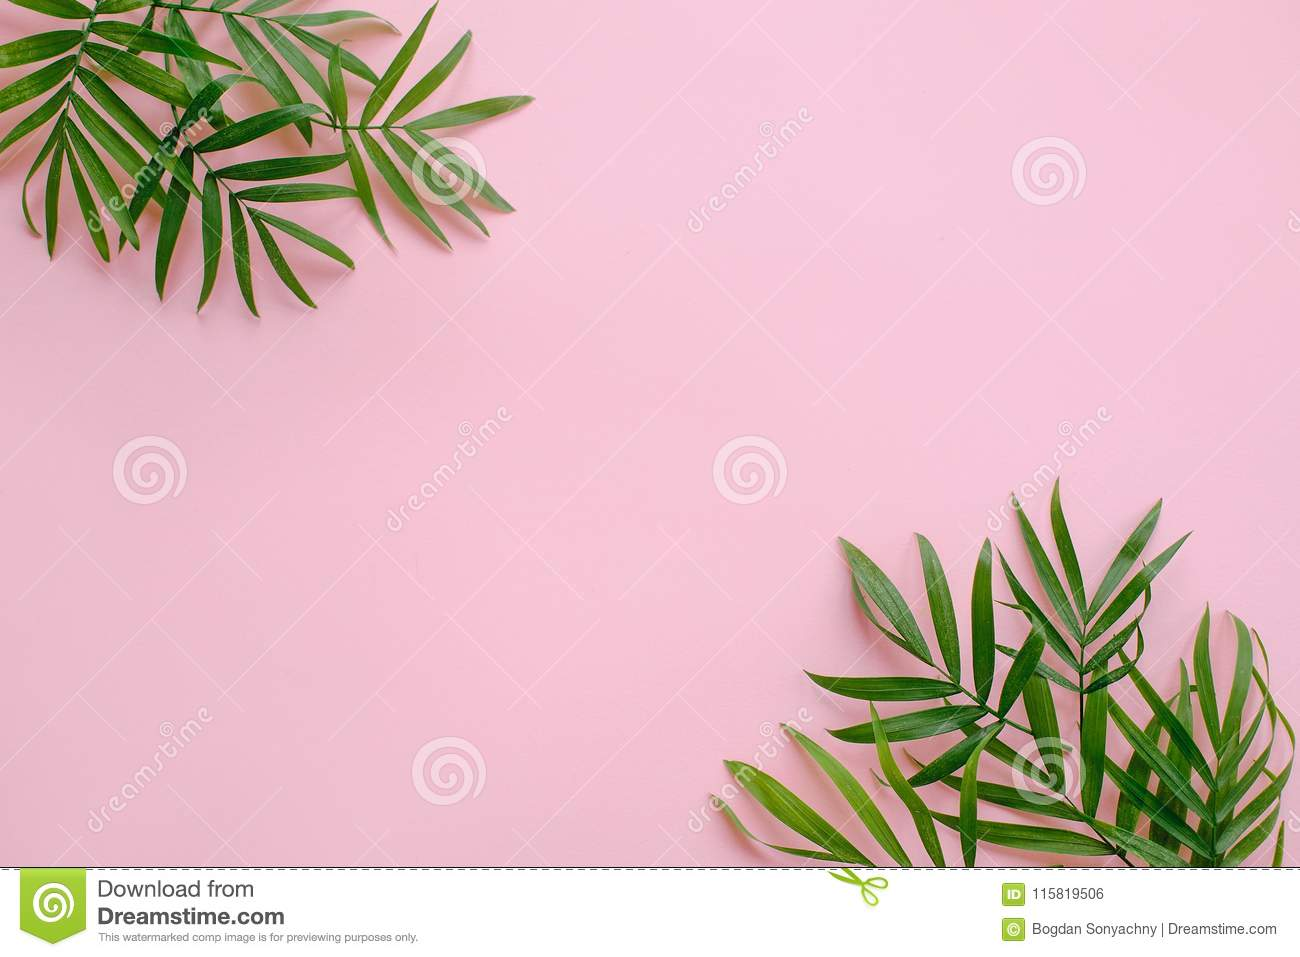 stylish summer flat lay. fresh palm leaves border on pink background with space for text. modern image. top view. summer vacation